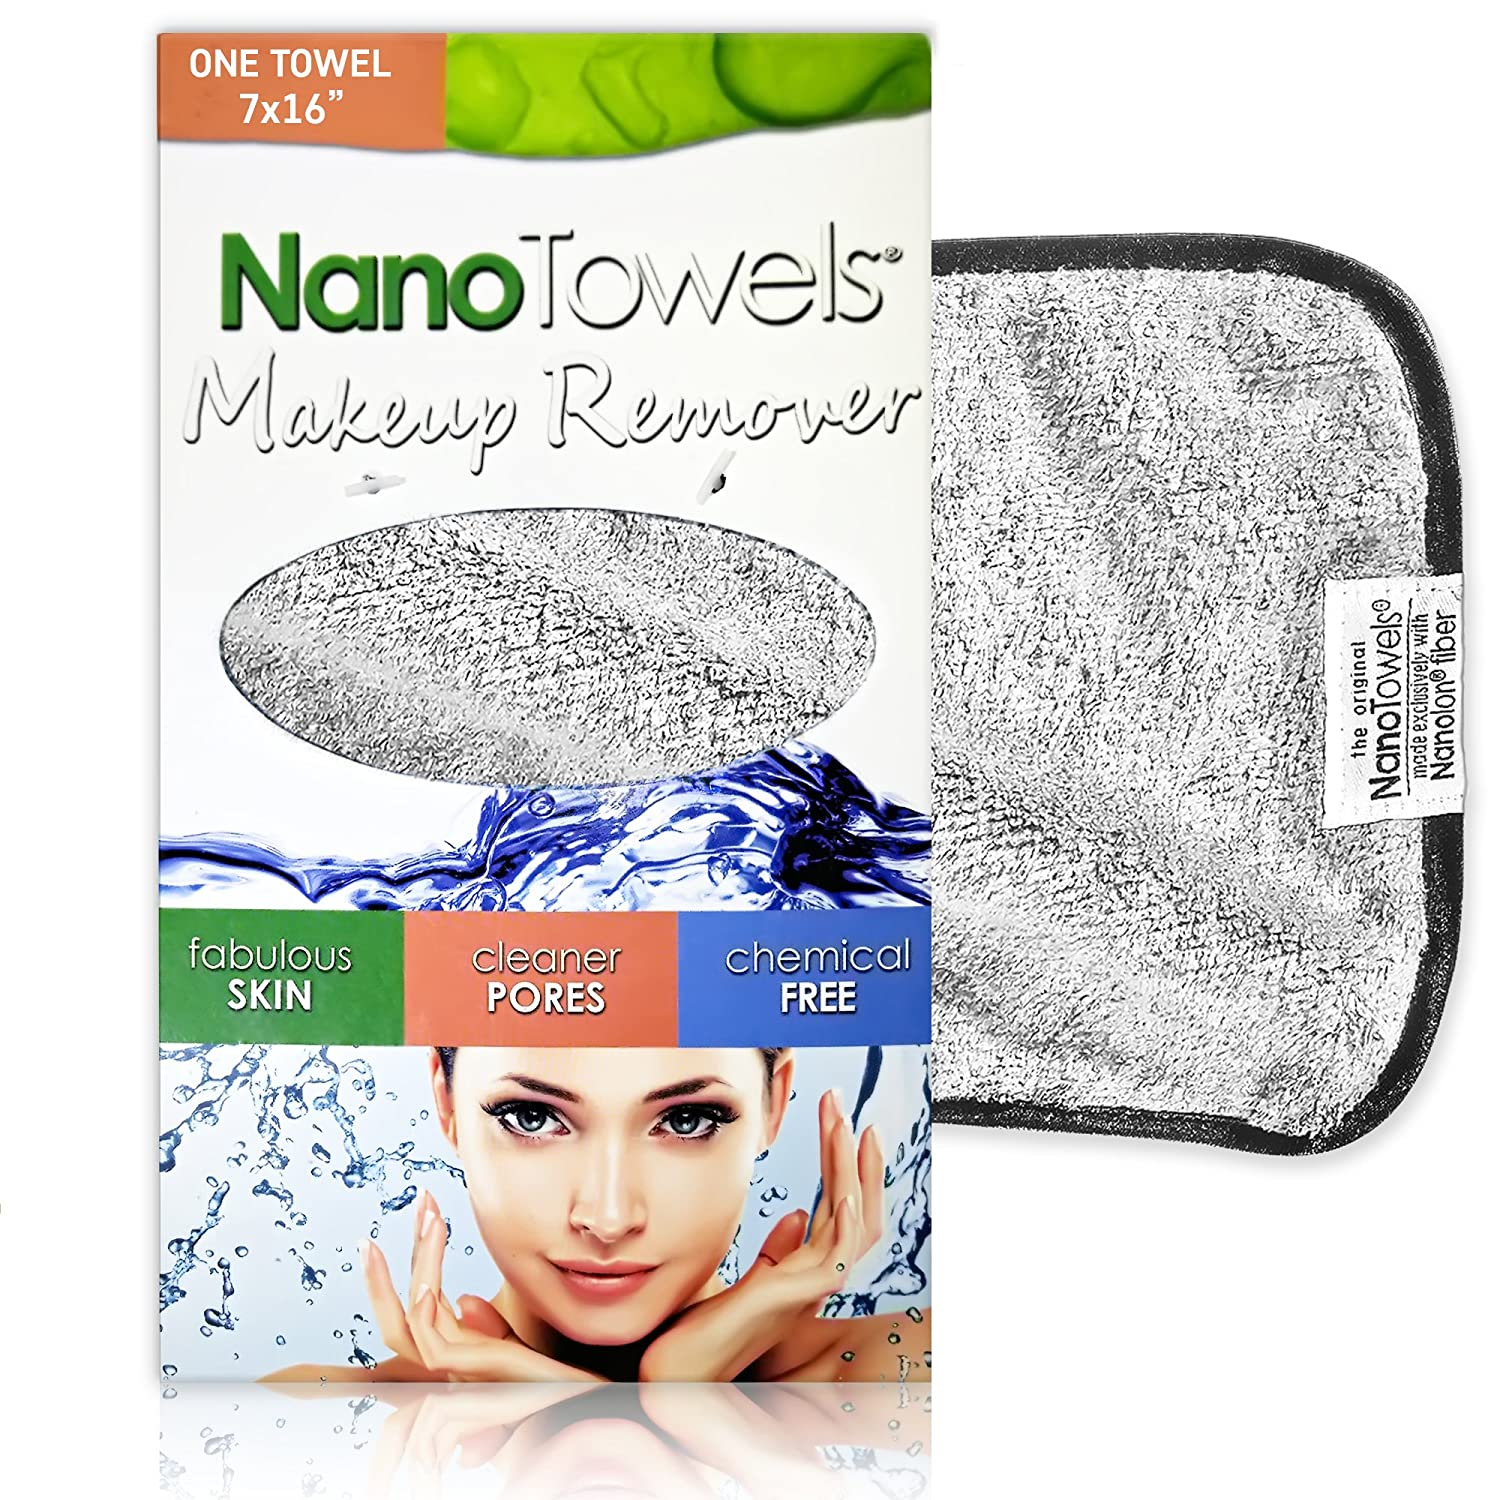 Nano Towel Makeup Remover Face Wash Cloth. Remove Cosmetics FAST and Chemical Free. Wipes Away Facial Dirt and Oil Like An Eraser. Great for Sensitive Skin, Acne, Exfoliating (Grey)